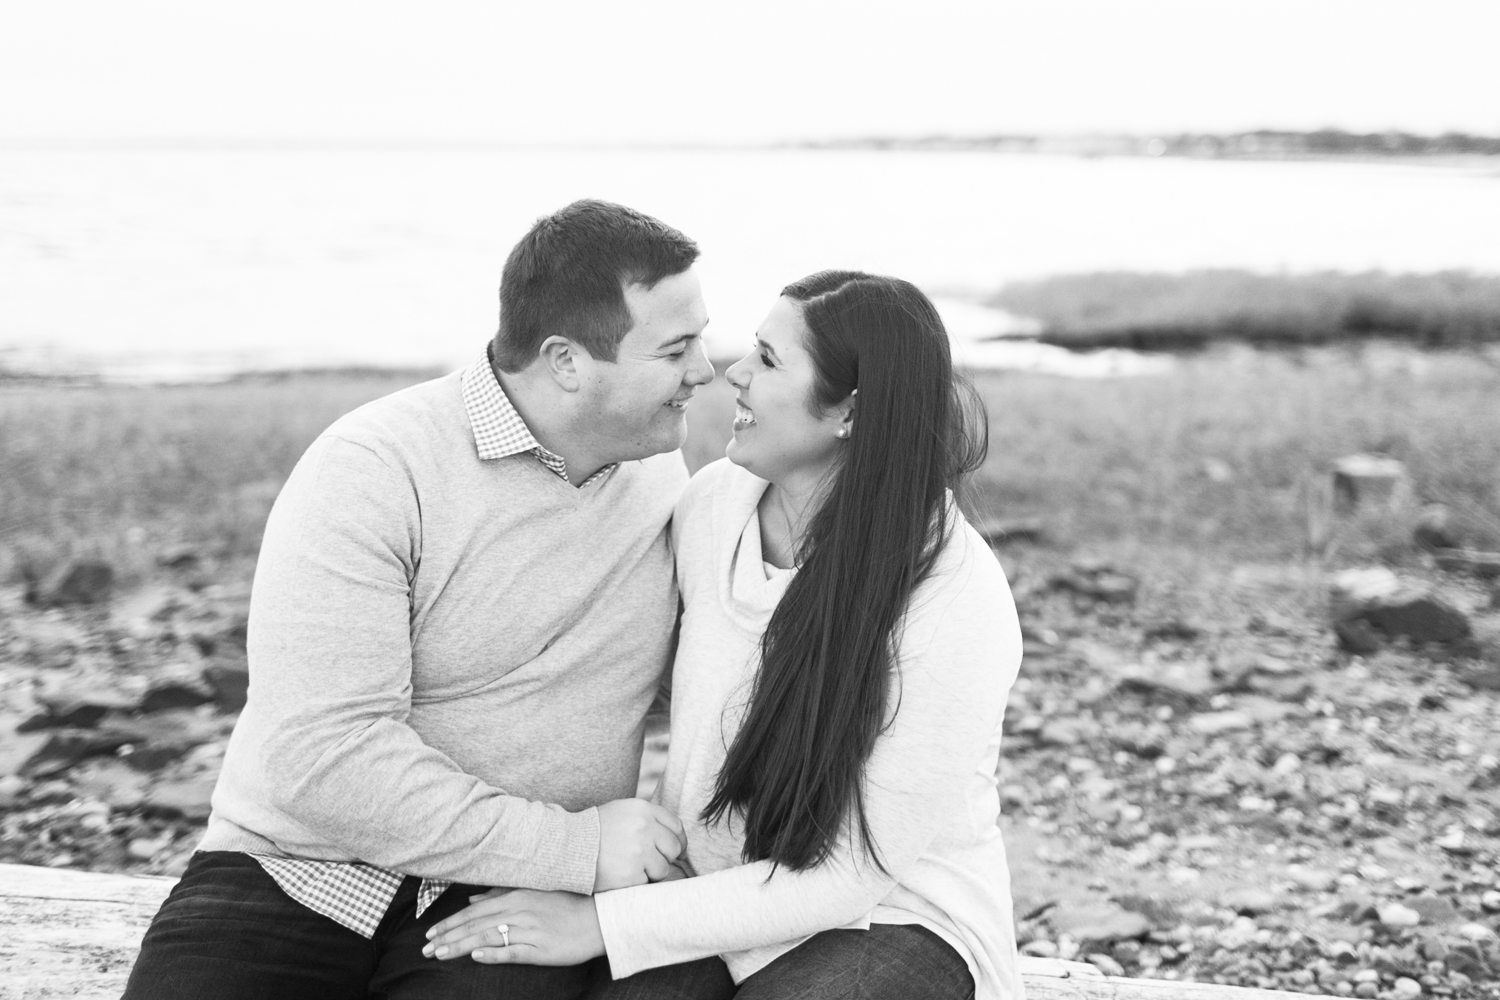 Top Fairfield County Connecticut Wedding, Engagement, Anniversary, Portrait Photographer | Shaina Lee Photography